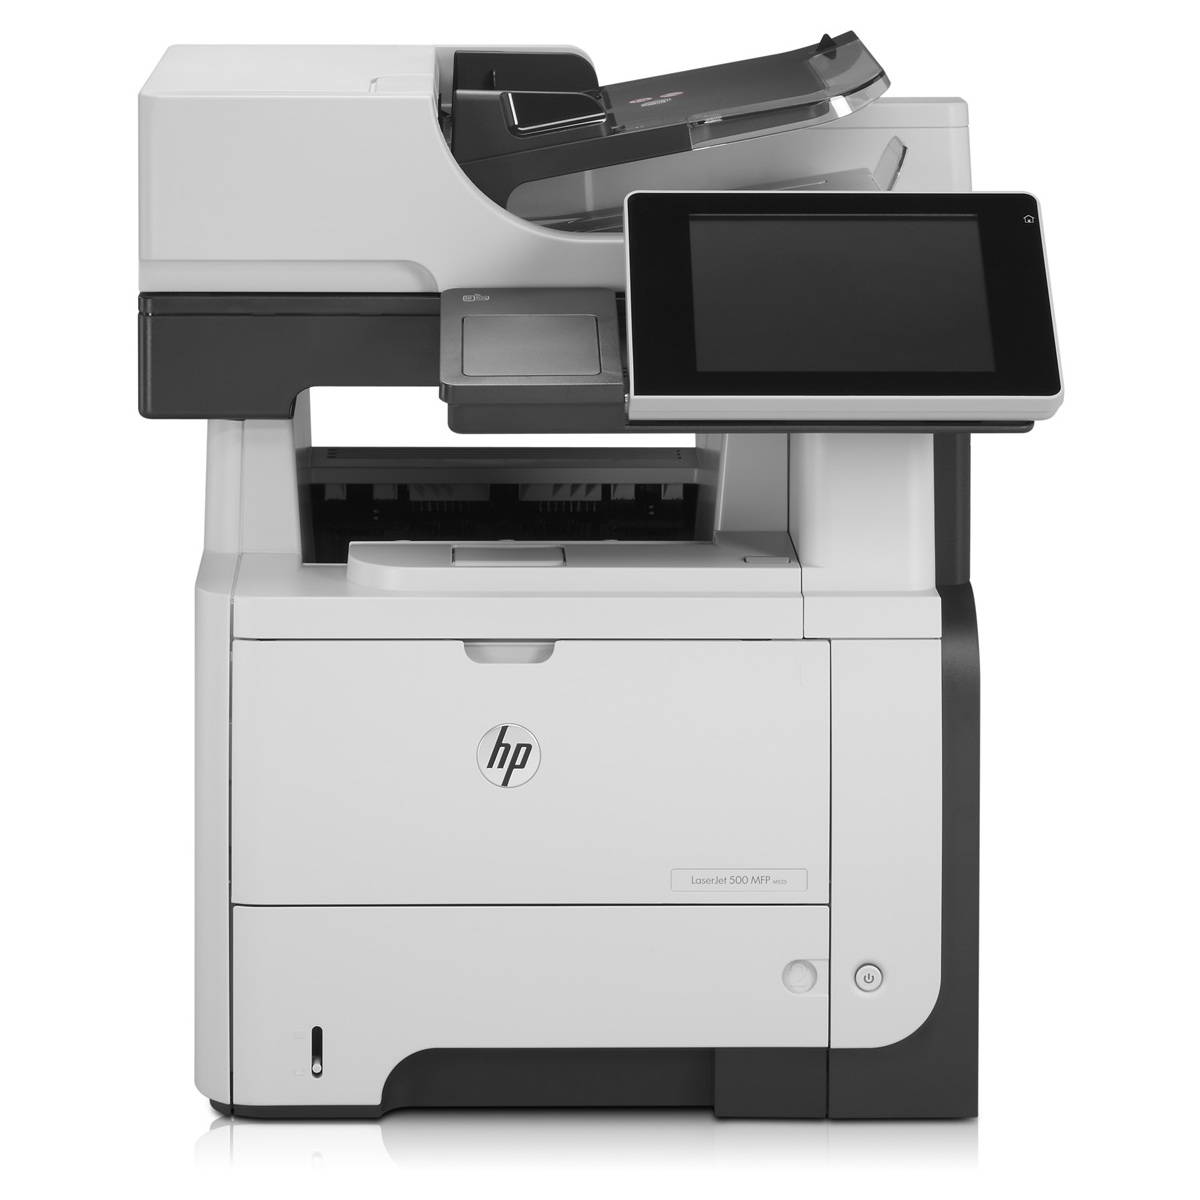 hp laserjet pro 500 mfp m525dn imprimante multifonction hp sur. Black Bedroom Furniture Sets. Home Design Ideas